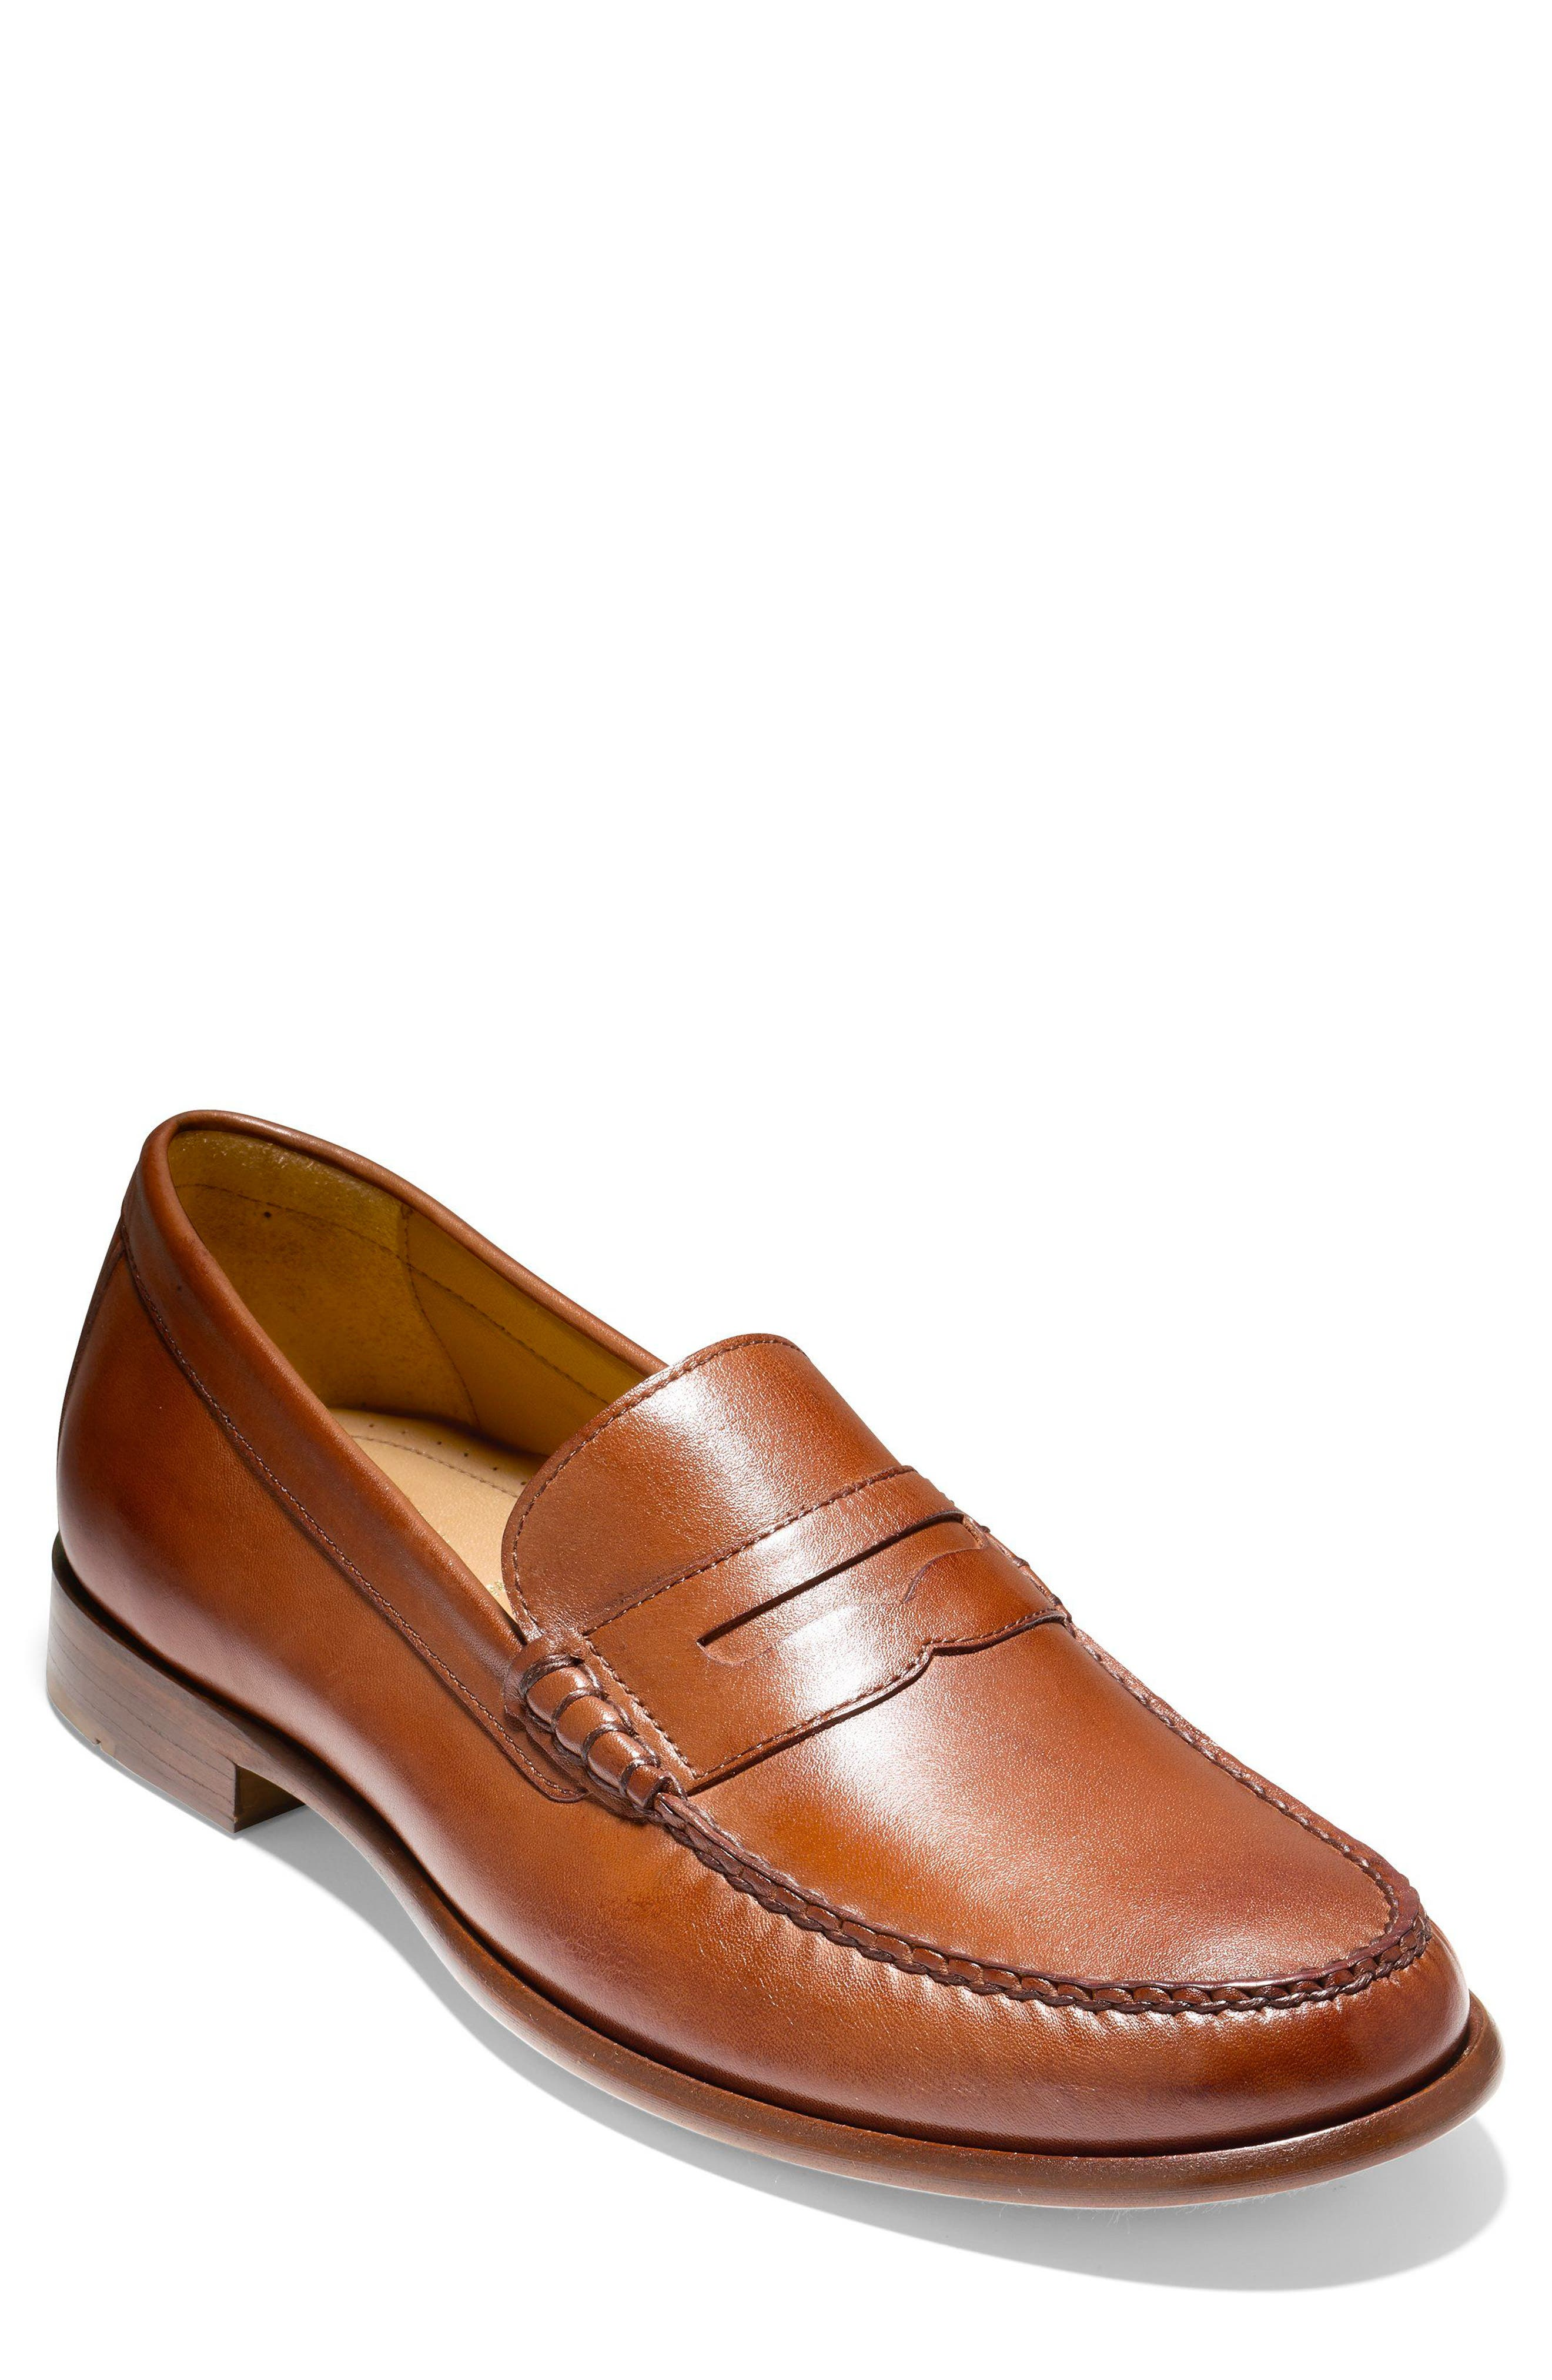 Pinch Penny Loafer,                             Main thumbnail 1, color,                             BRITISH TAN LEATHER